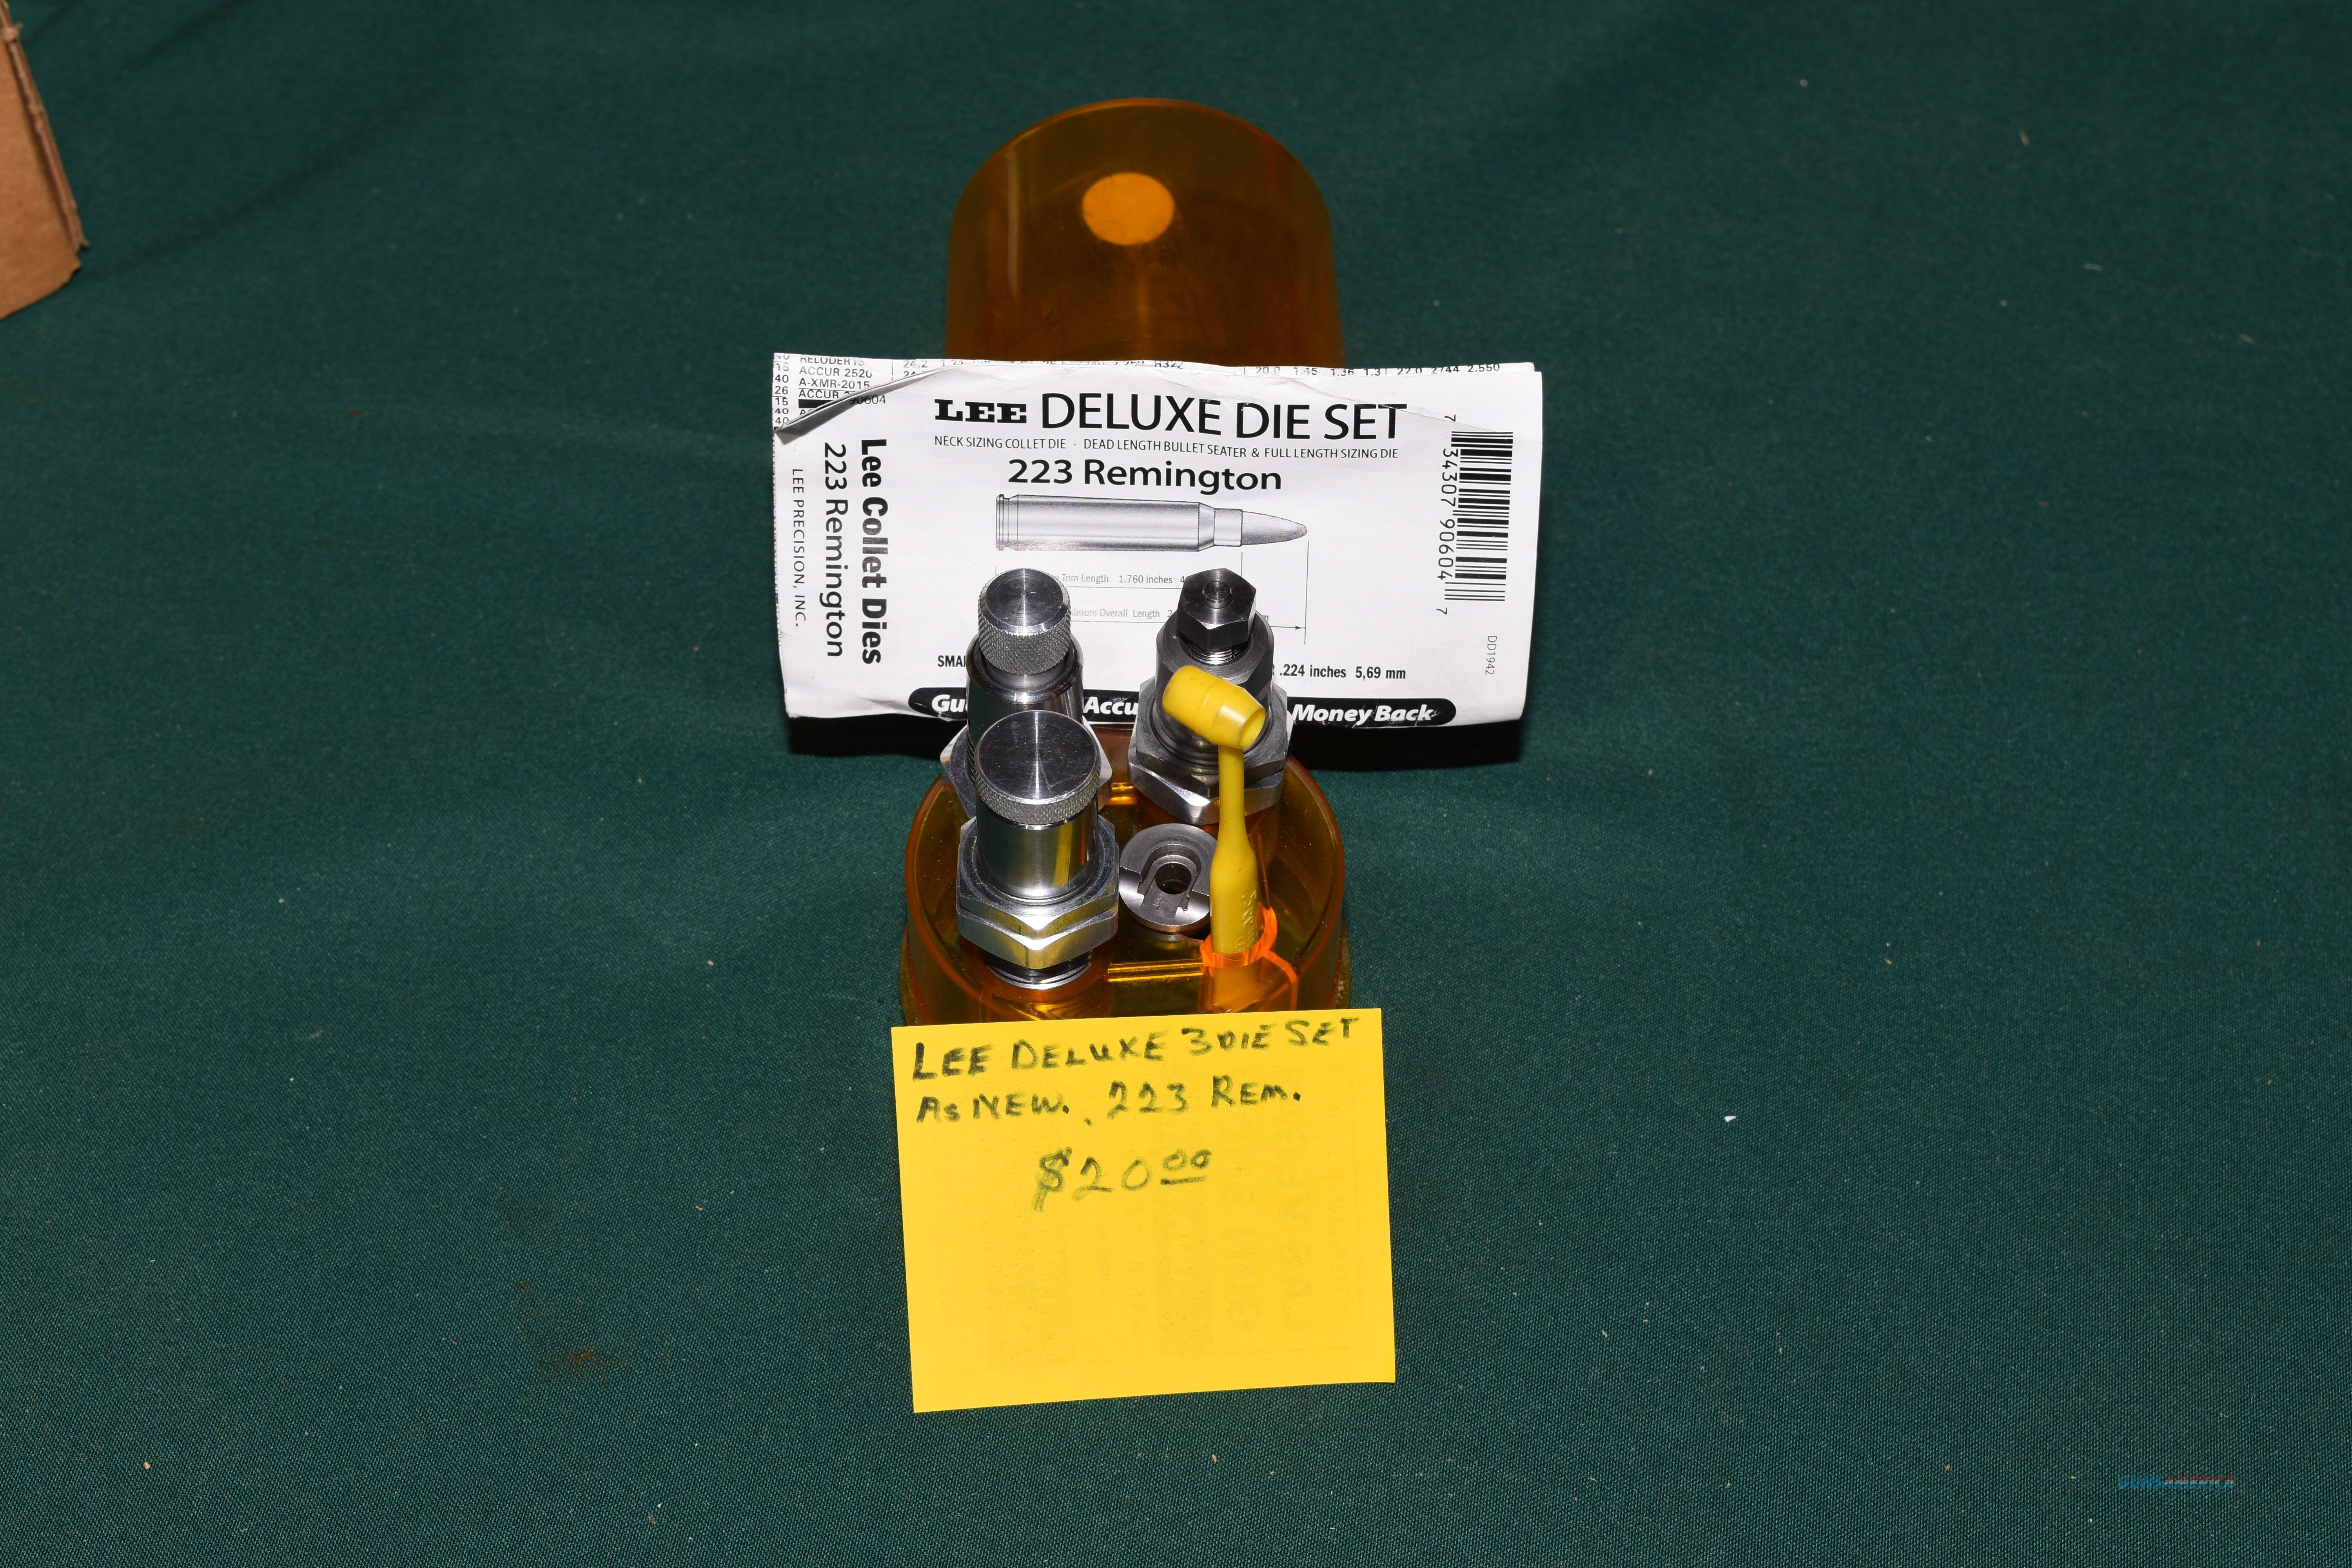 Lee Deluxe 3 Die set in 223 Rem. BUYER PAYS  SHIPPING fromzip code 89448  Non-Guns > Reloading > Equipment > Metallic > Dies